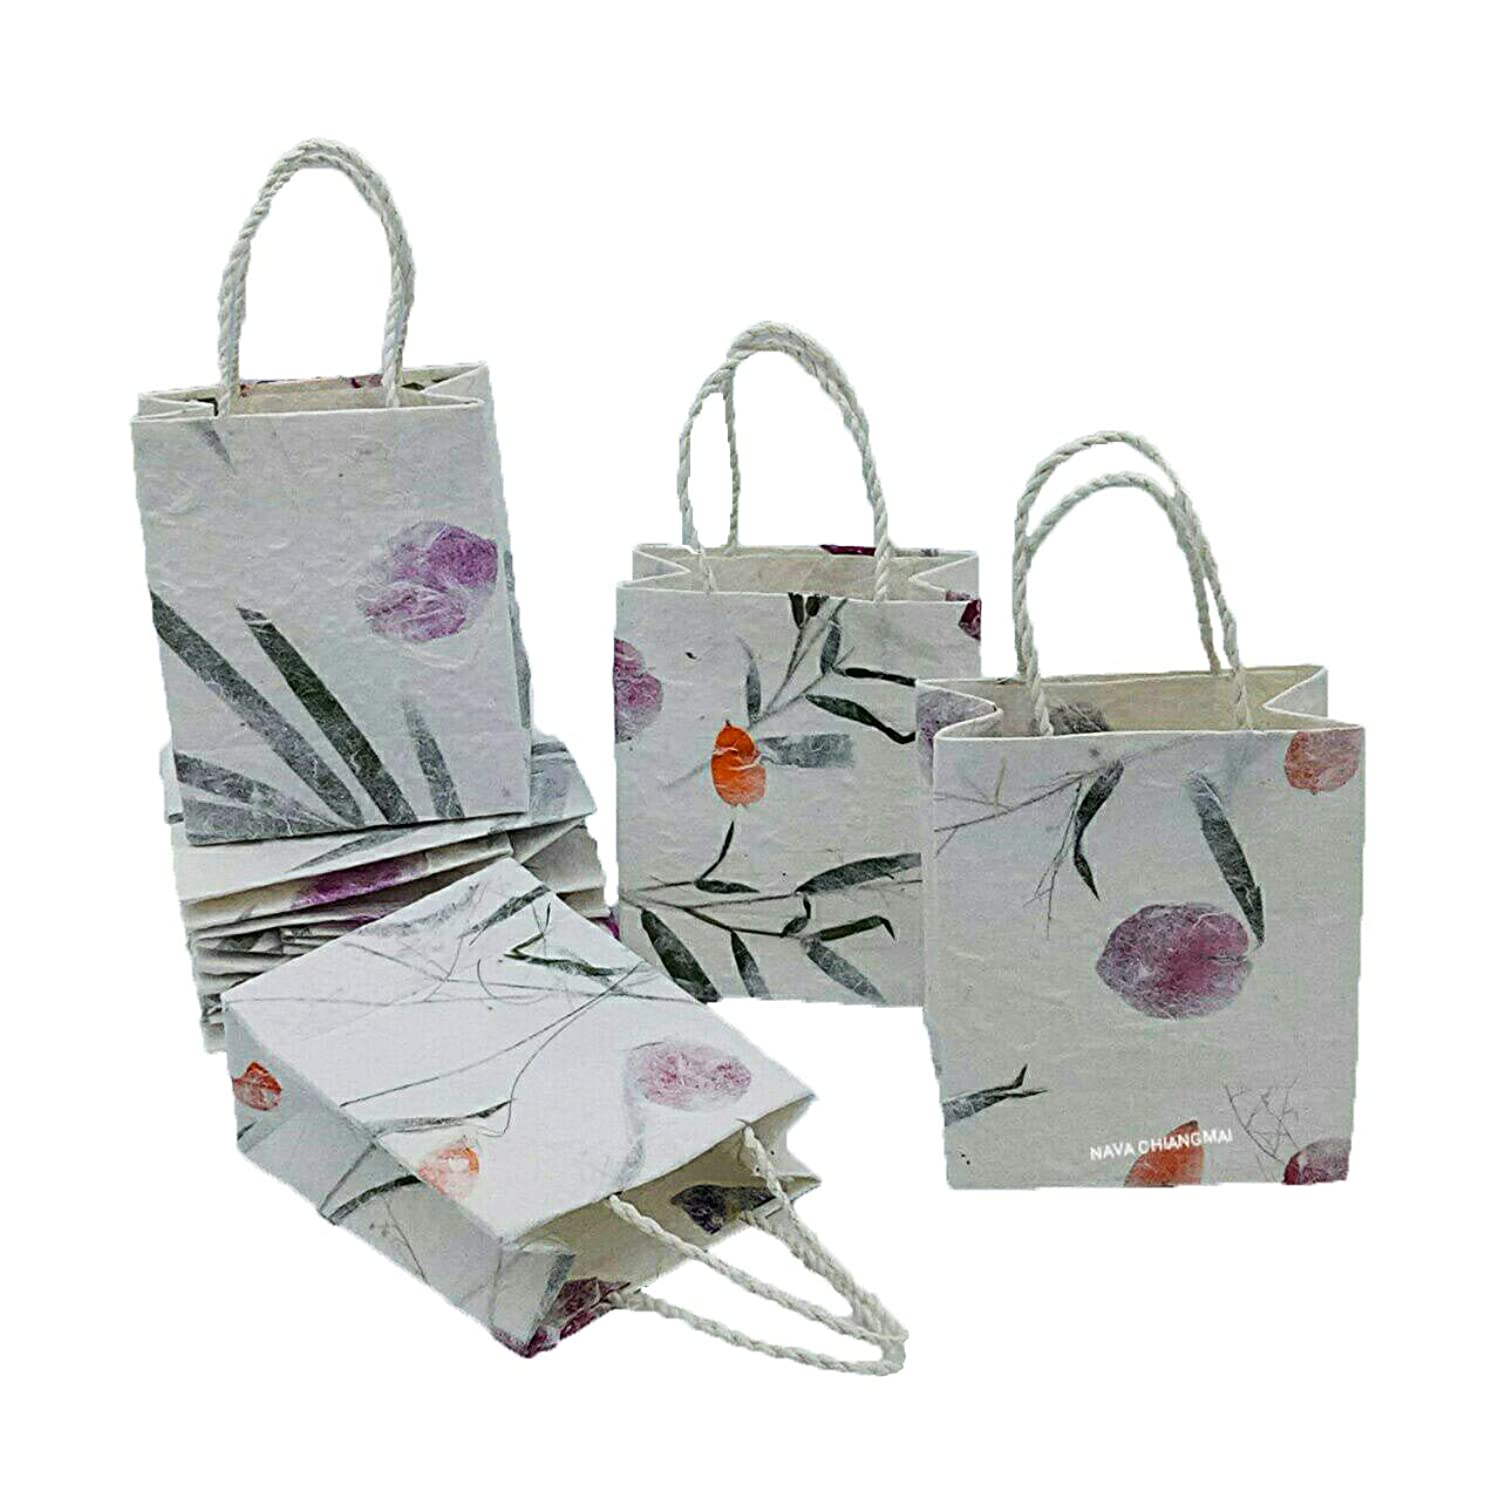 NAVA CHIANGMAI Natural Color Reusable Mulberry Paper Pulp with Dried Flower Petals Kraft Small Gift Bags with Handles Size 4 x 2 x 5 Inch Pack of 10